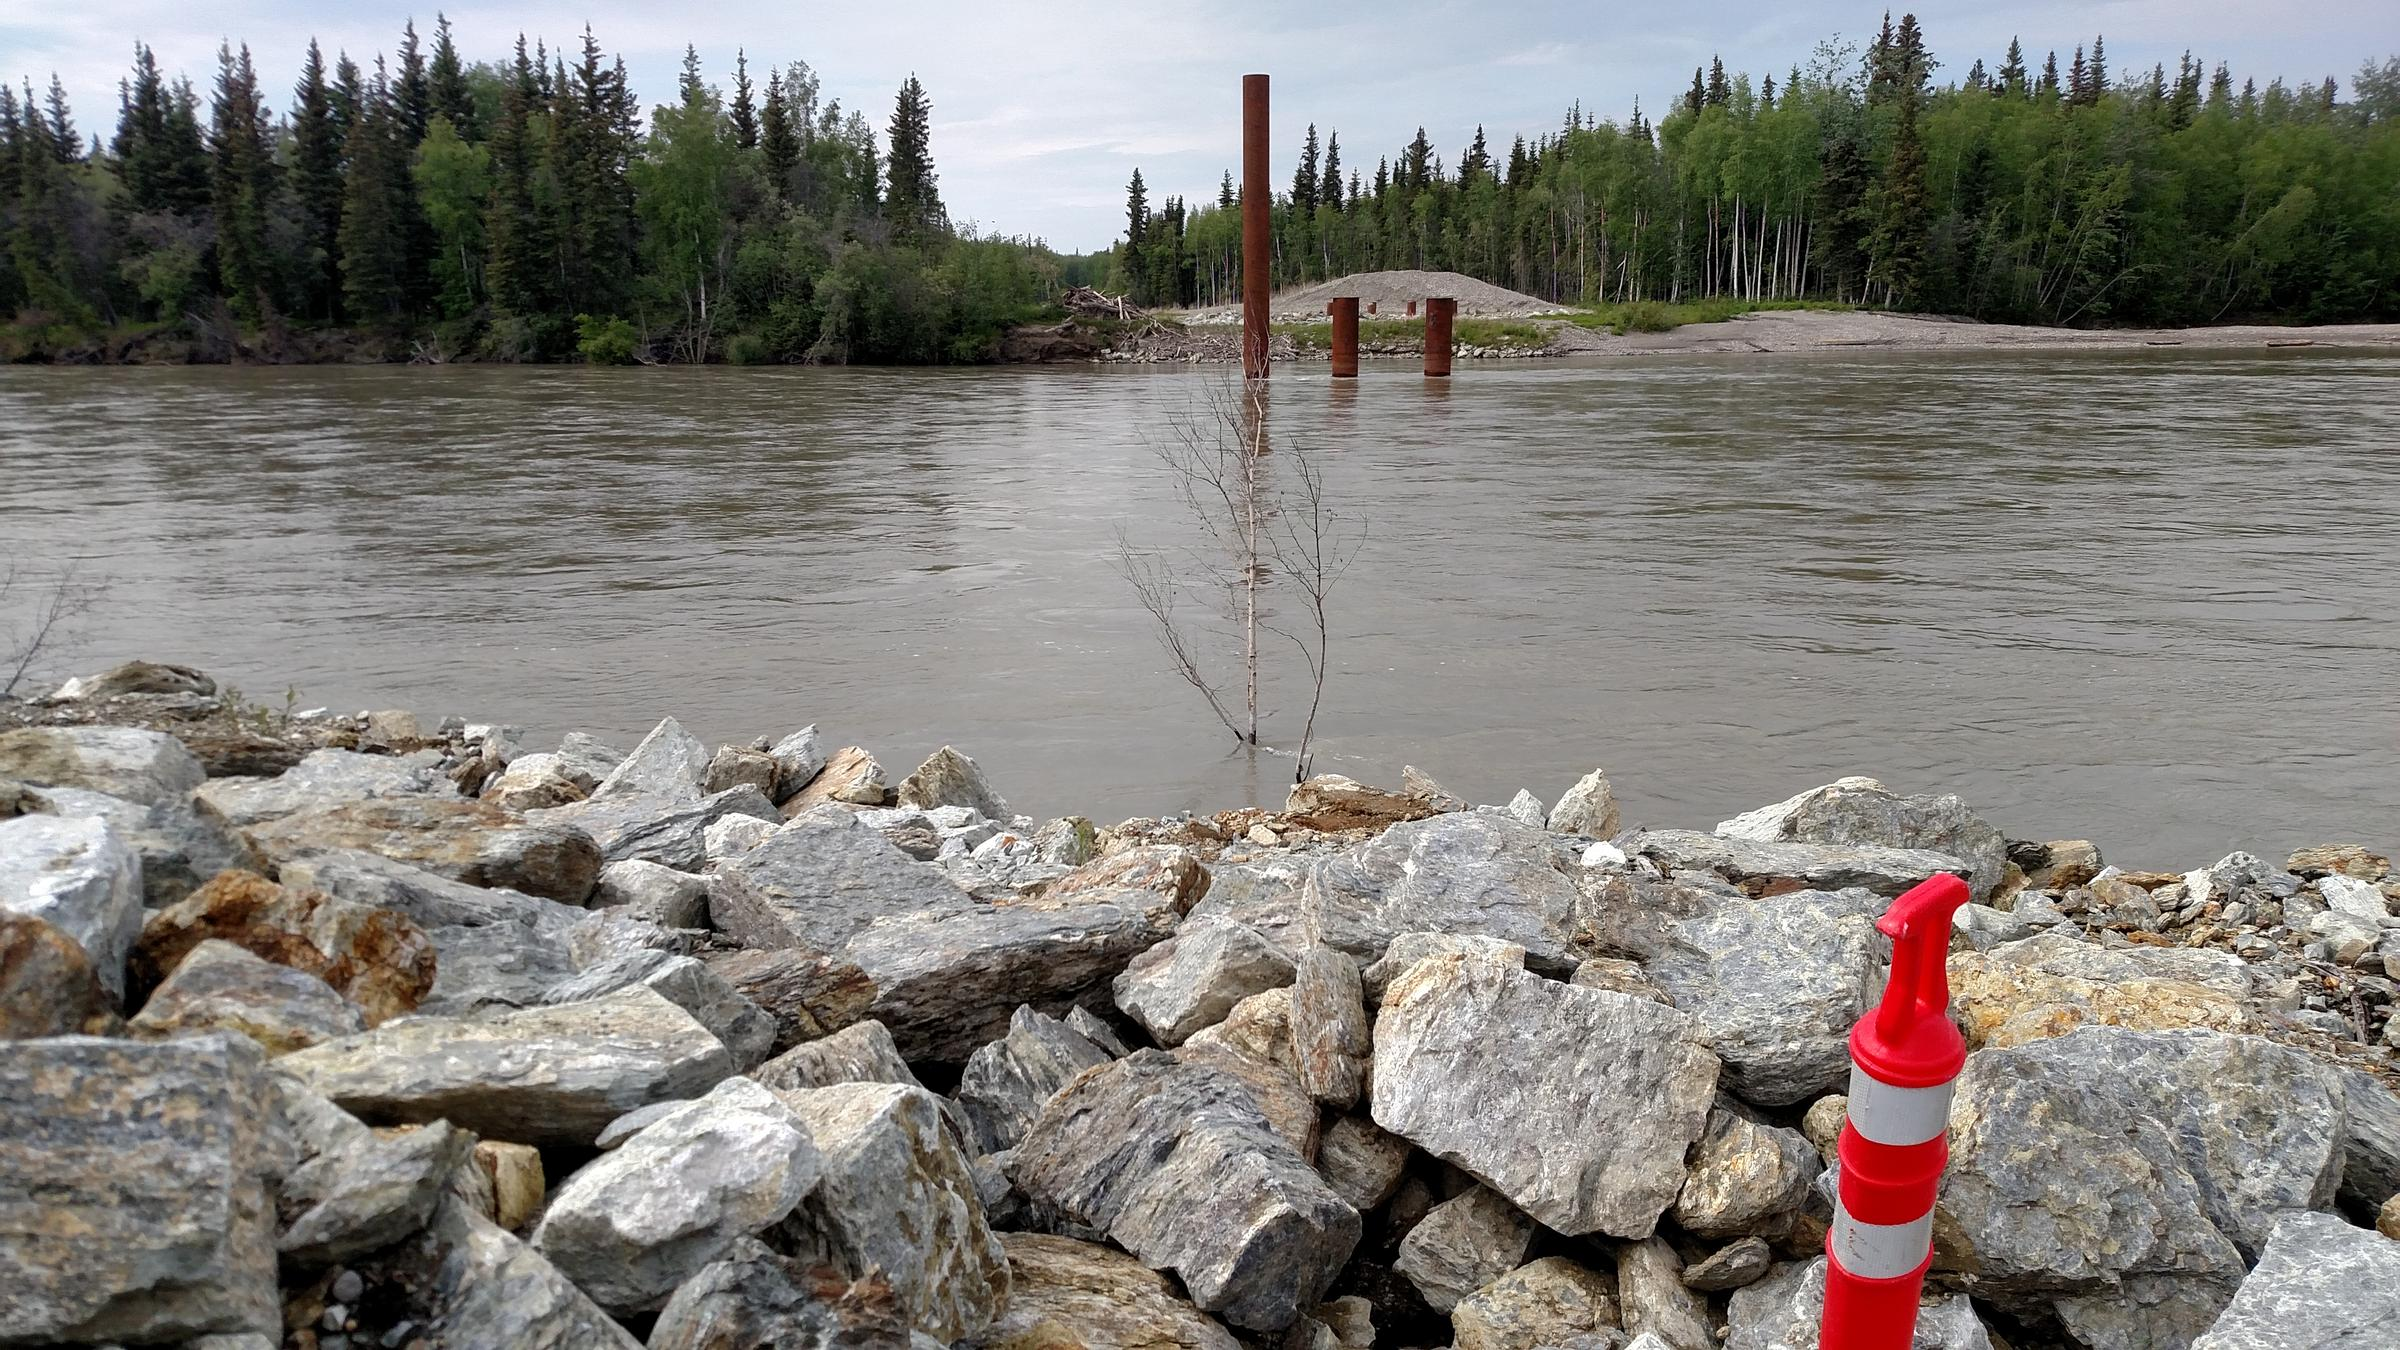 Nenana's contractor was able to accomplish some work on the big bridge, including driving pilings into the riverbed near the opposite side, before money for the project ran out. (Photo by Tim Ellis, KUAC)